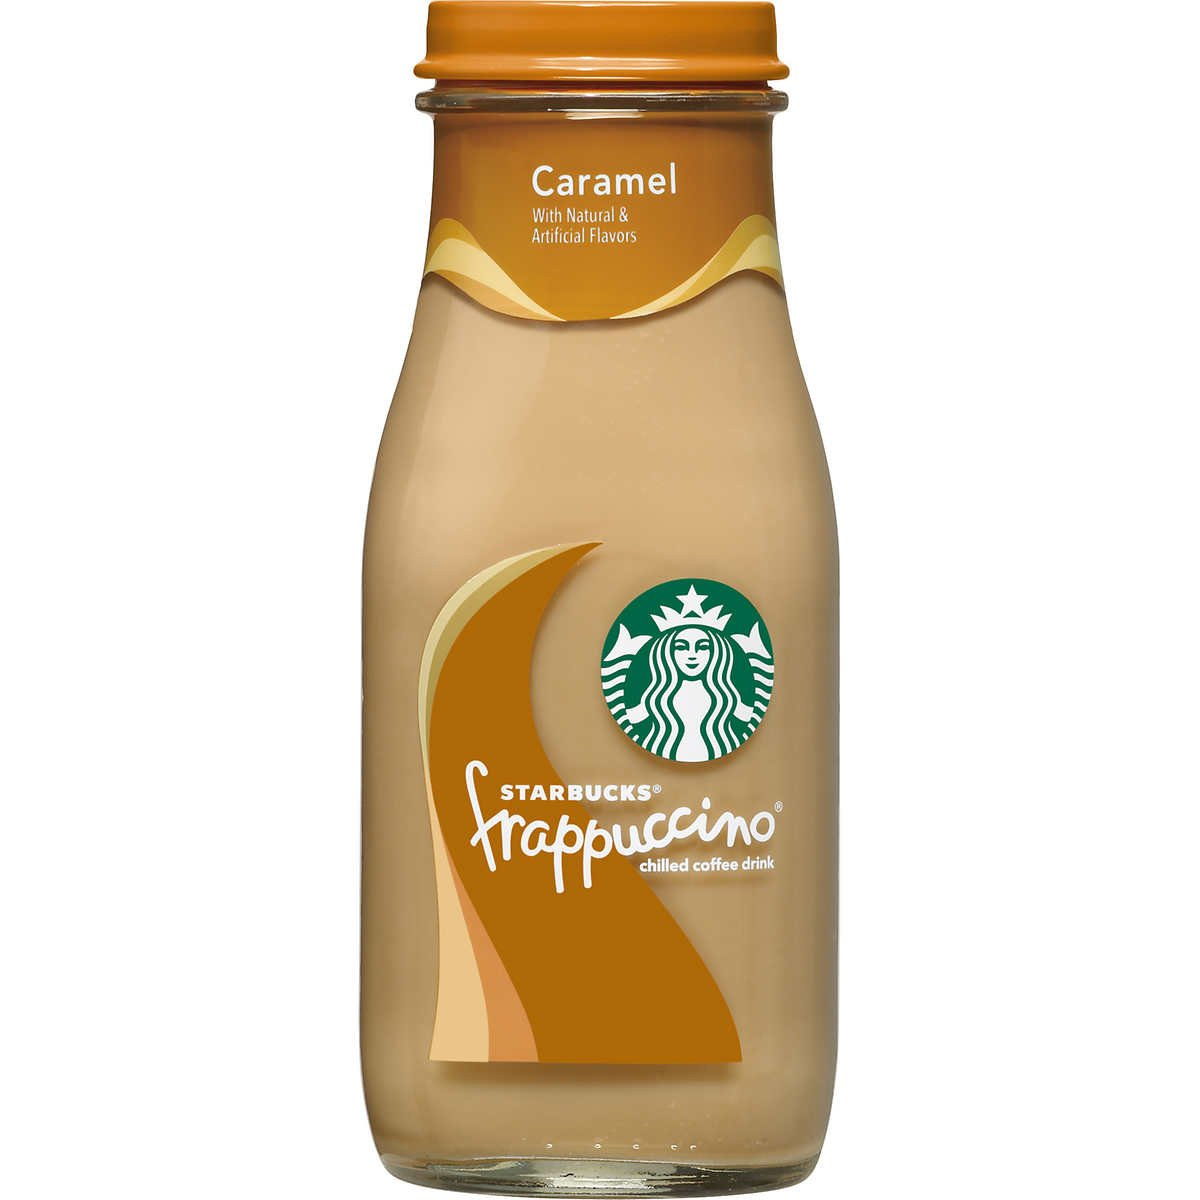 Starbucks Frappuccino Coffee Drink 9.5 oz Glass Bottles (15-Pack) (Caramel)